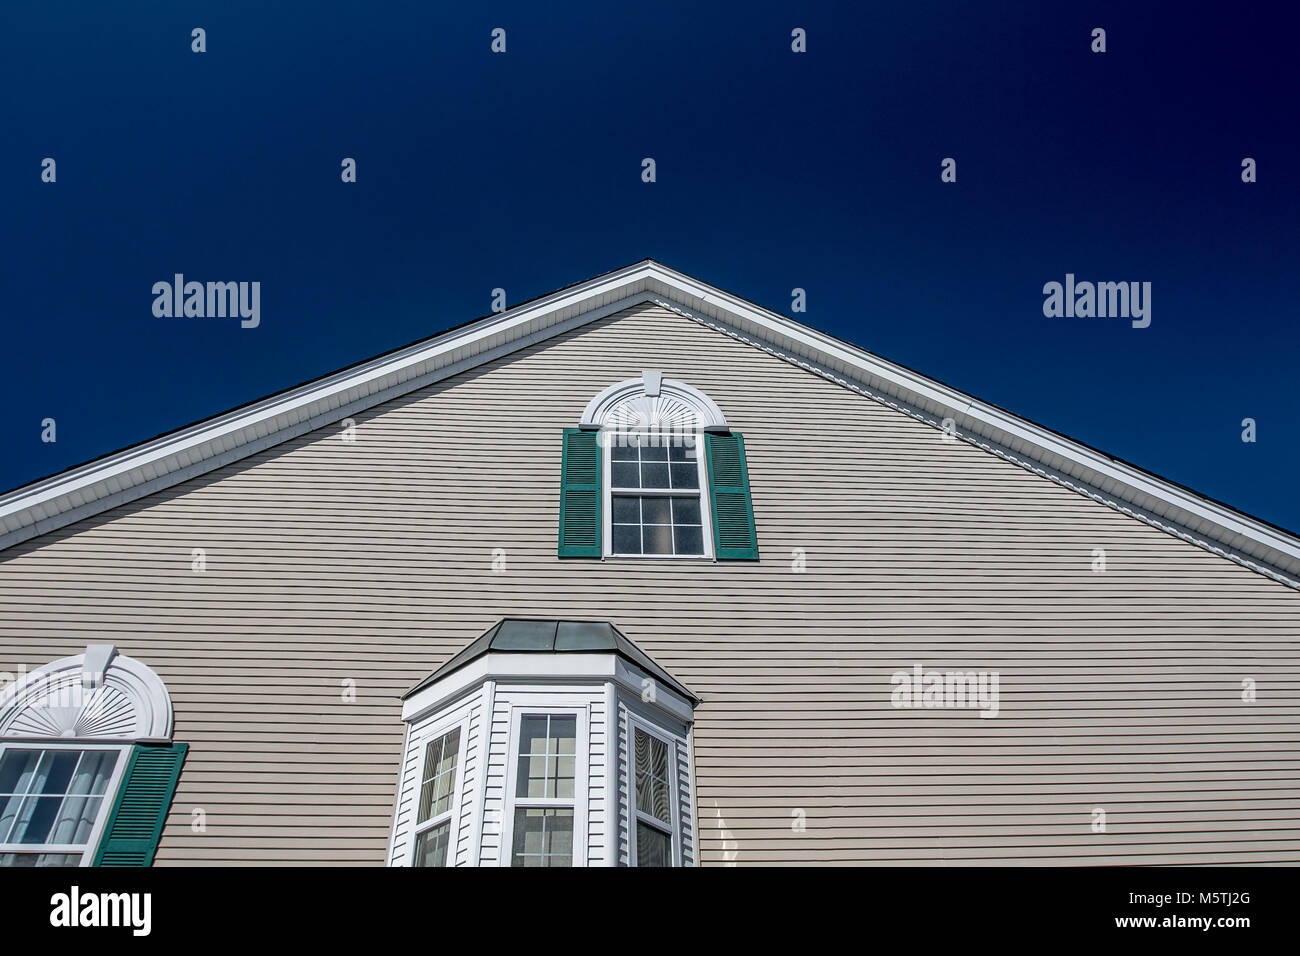 Closeup of a residential dwelling on a sunny day in the USA. Stock Photo